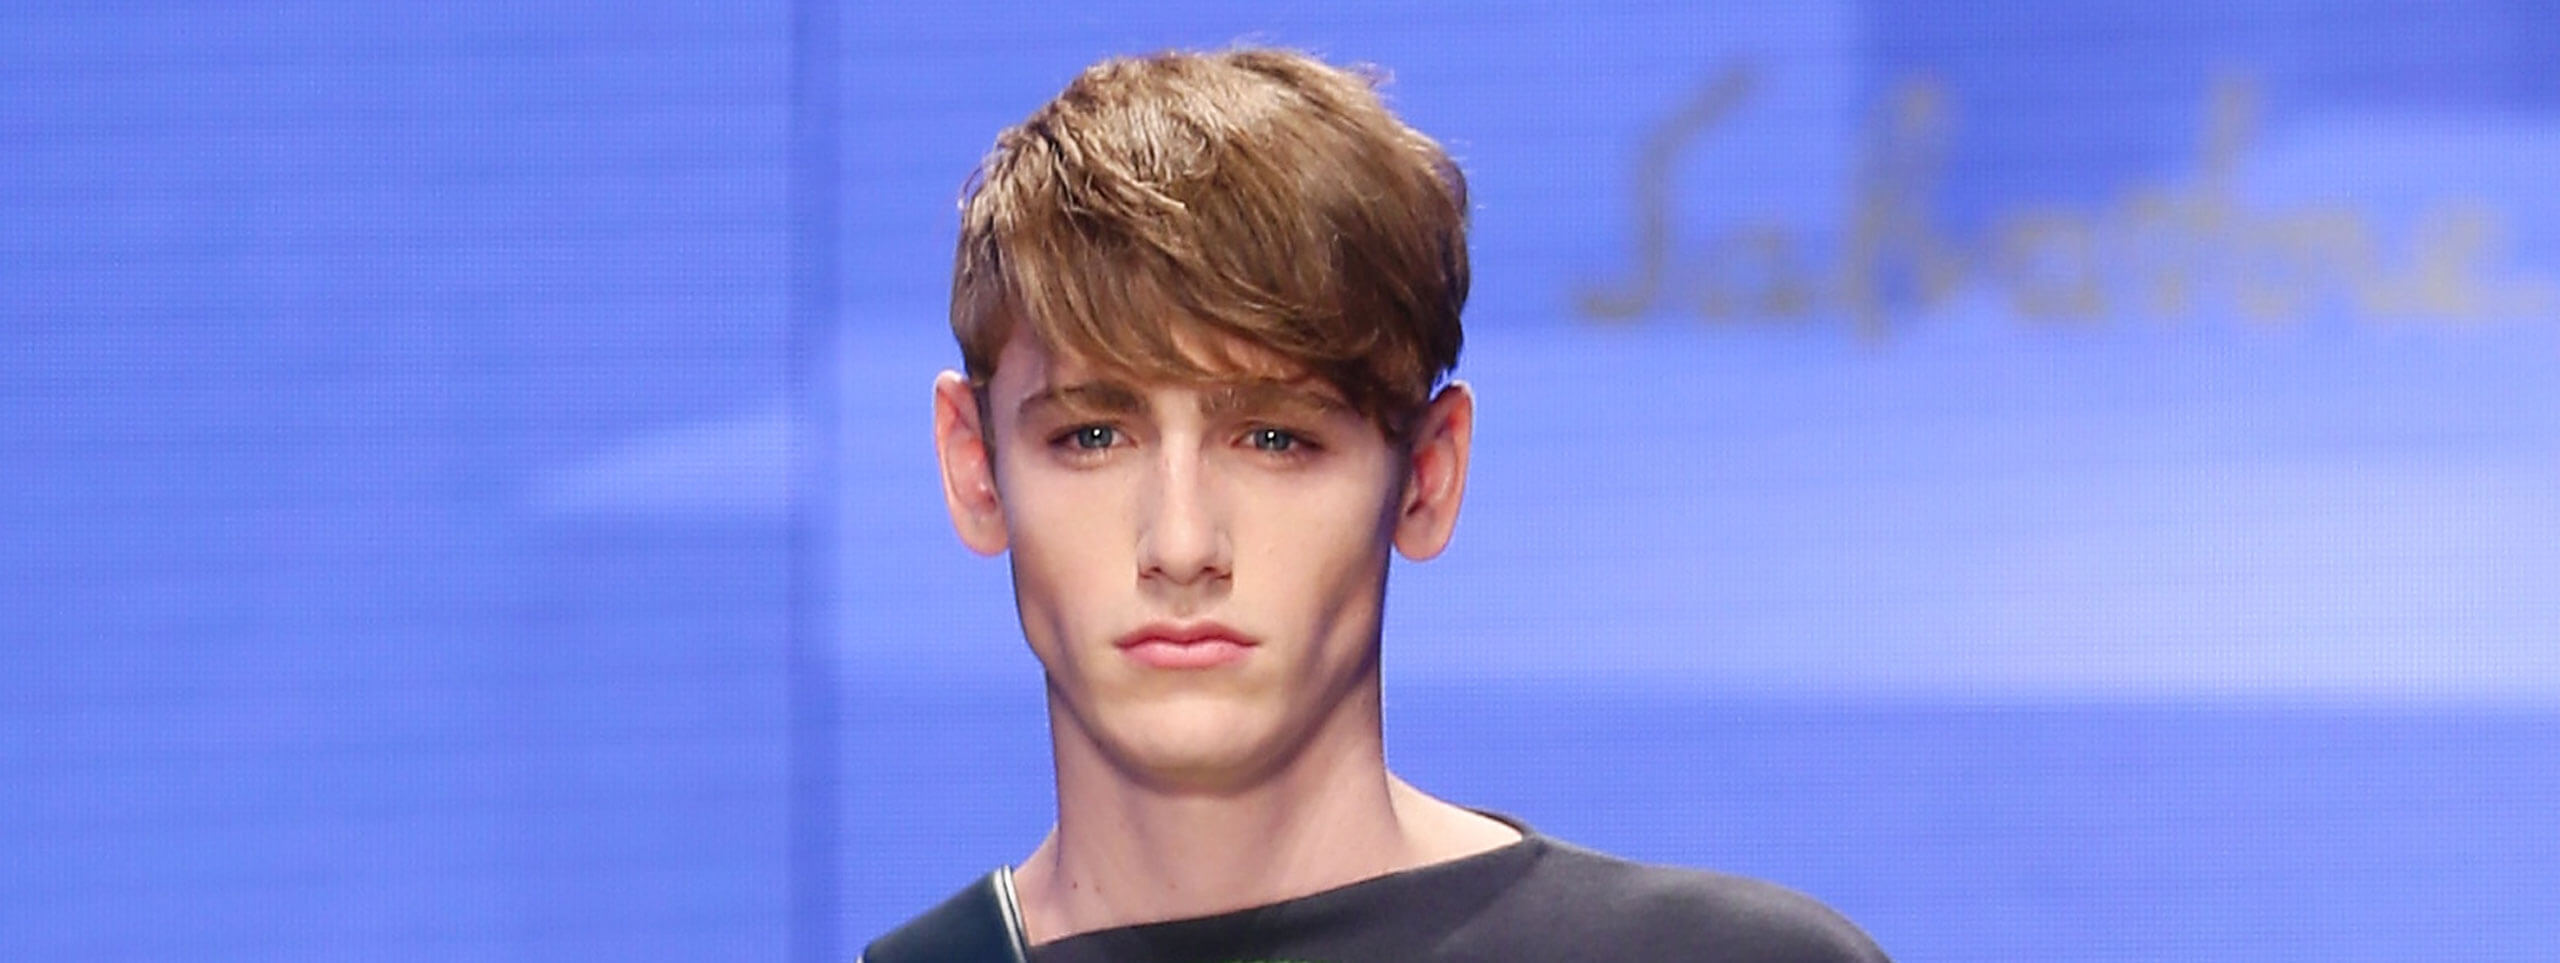 Male model with short hairstyle and long fringe